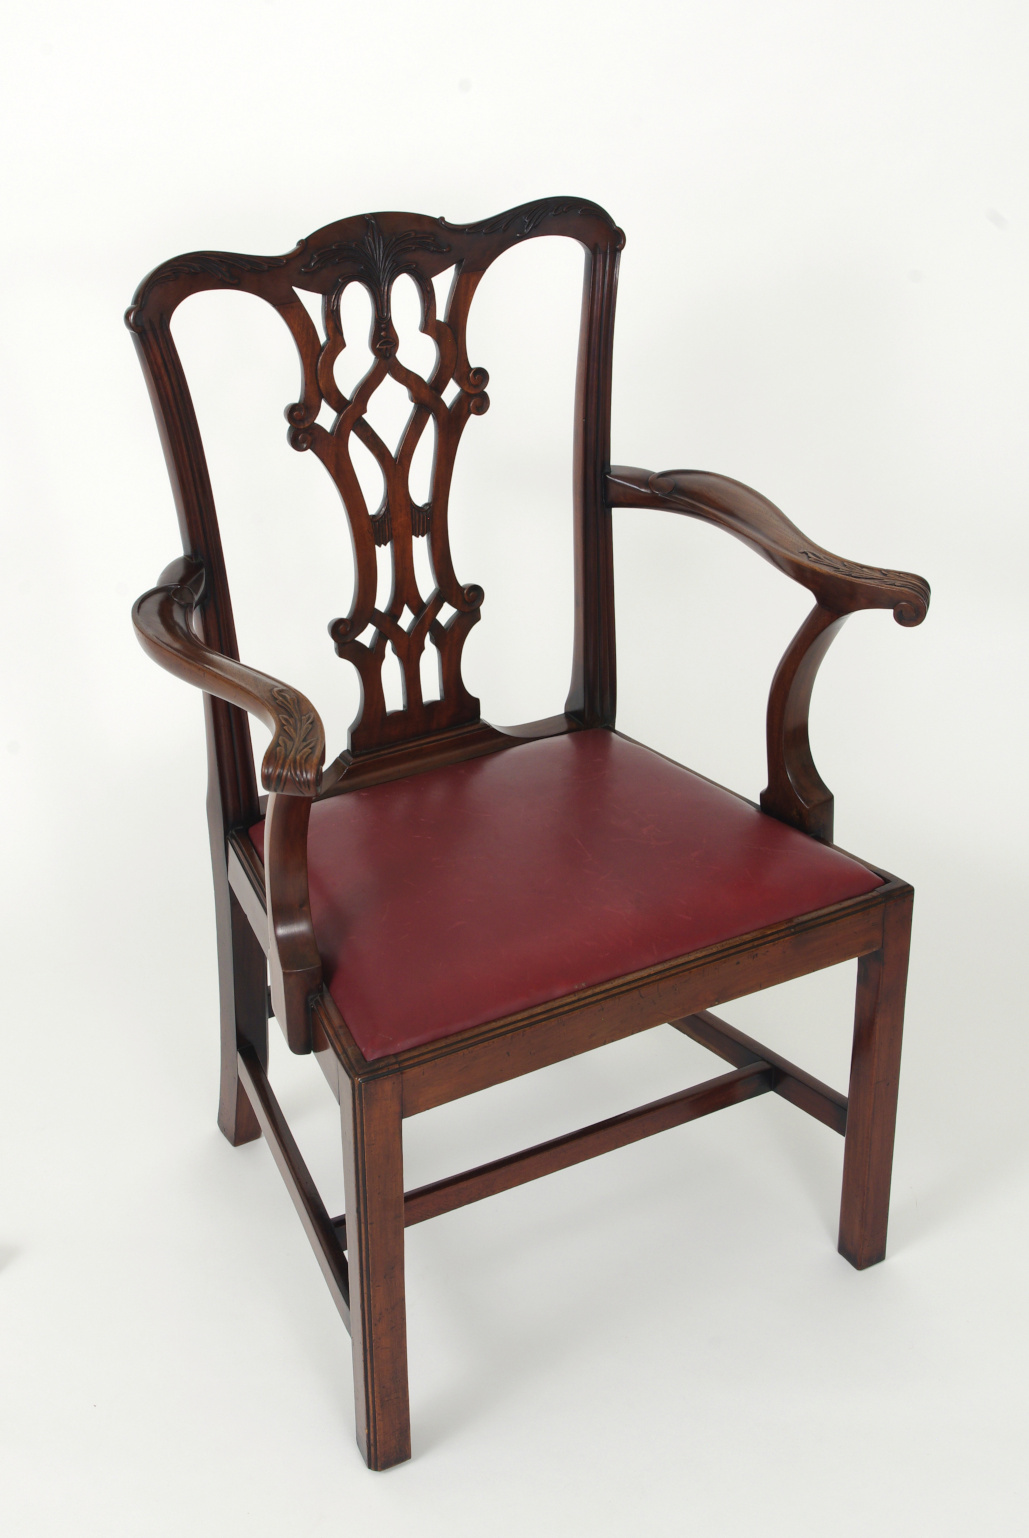 View 5: Set of Eight Chippendale Style Mahogany Dining Chairs (6+2), early 19th c.